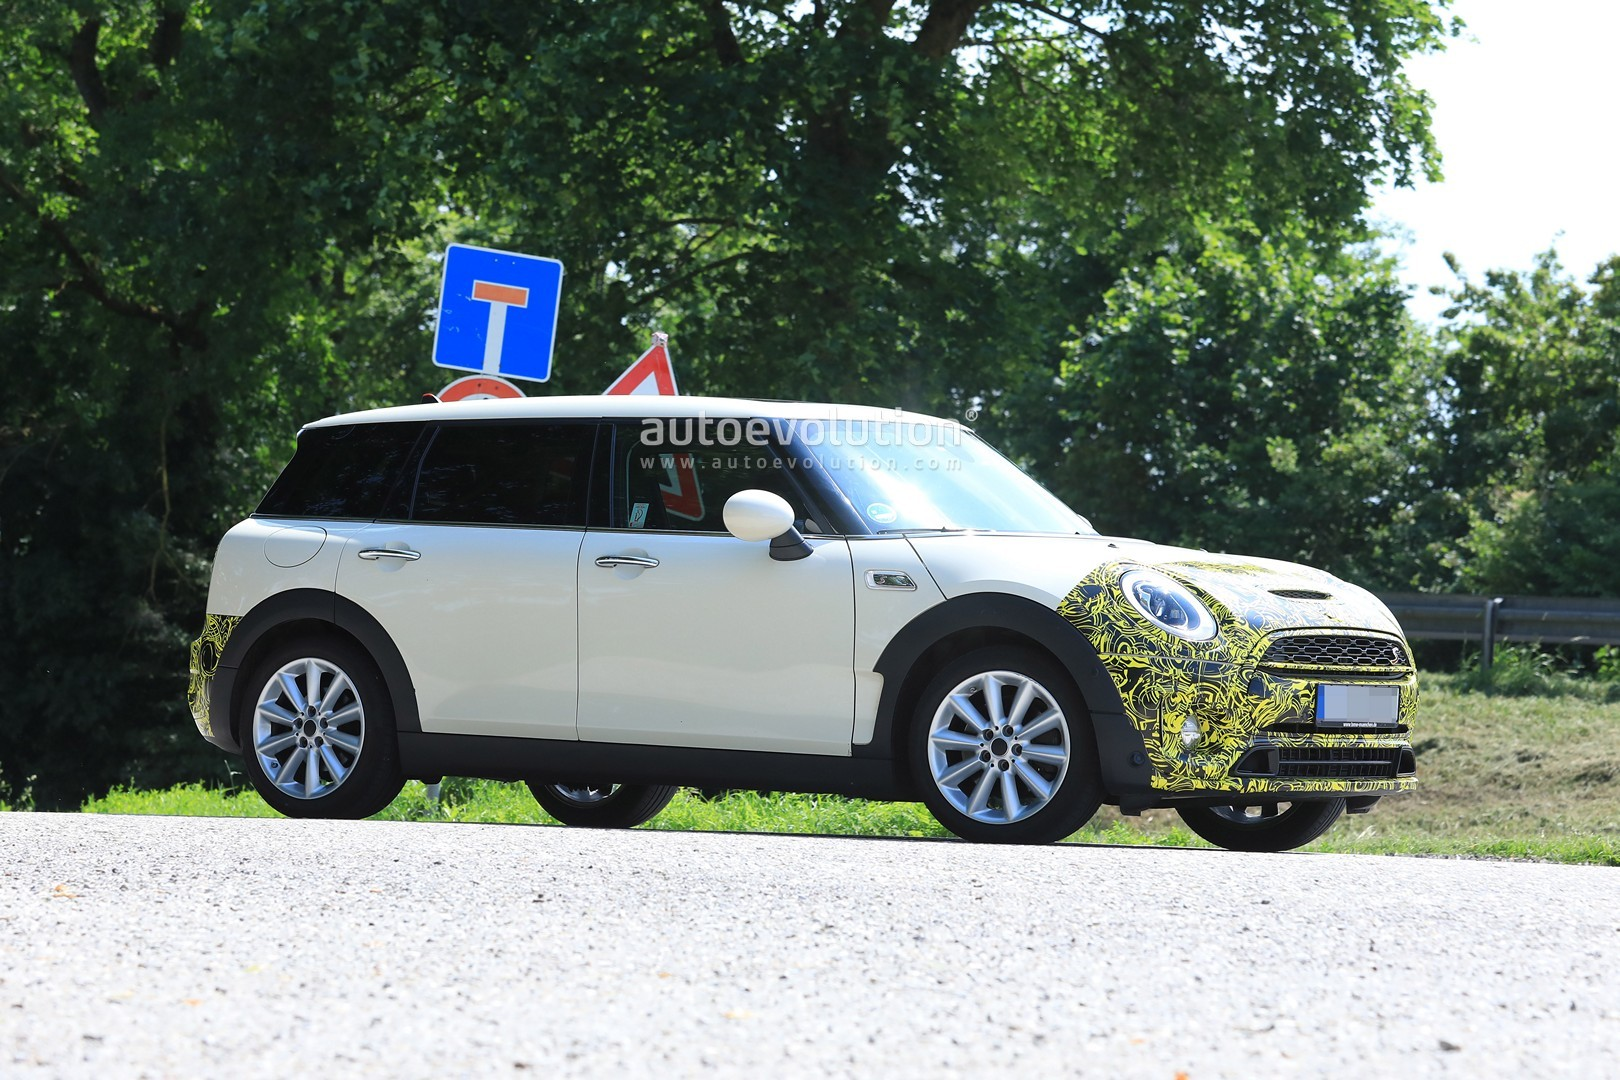 2019-mini-​clubman-fa​celift-spi​ed-for-the​-first-tim​e-could-be​-testing-d​ct_4